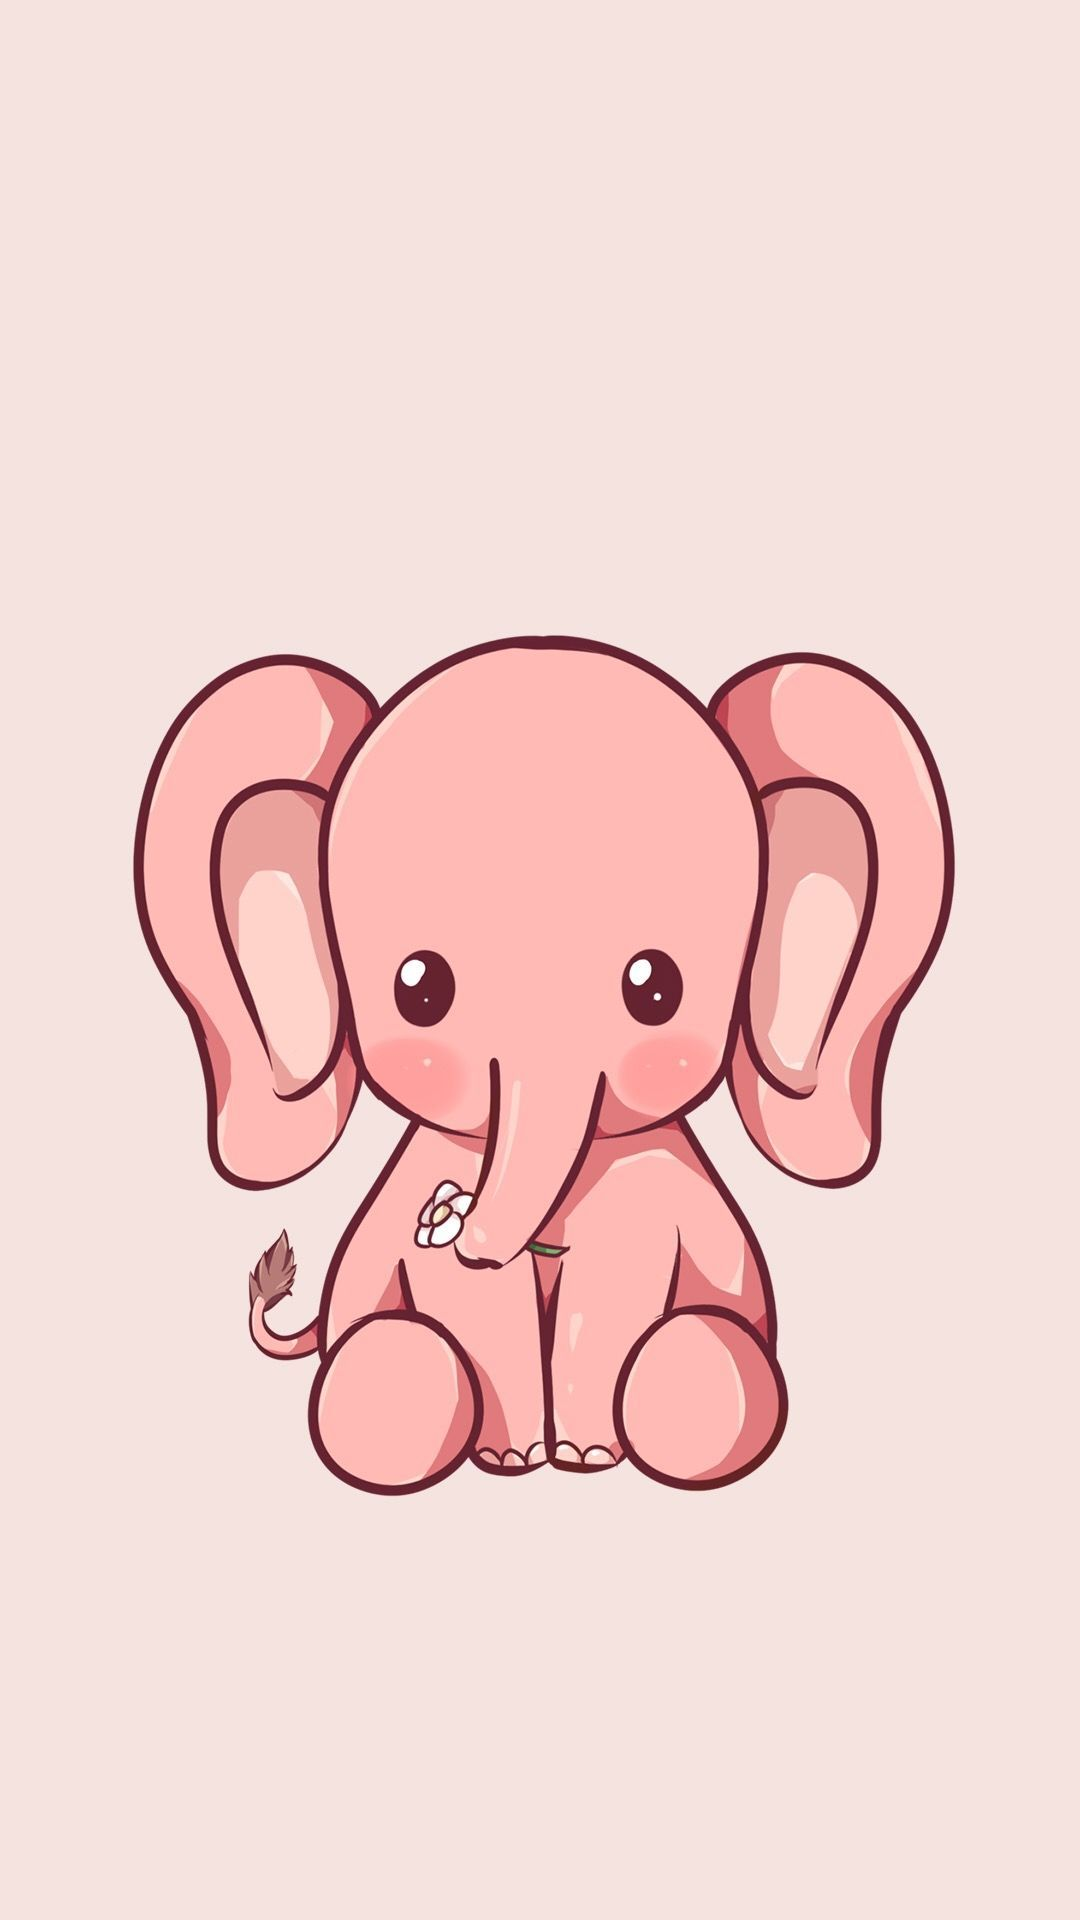 Cute Wallpaper Iphone Hupages Download Iphone Wallpapers Elephant Iphone Wallpaper Wallpaper Iphone Cute Cute Elephant Drawing